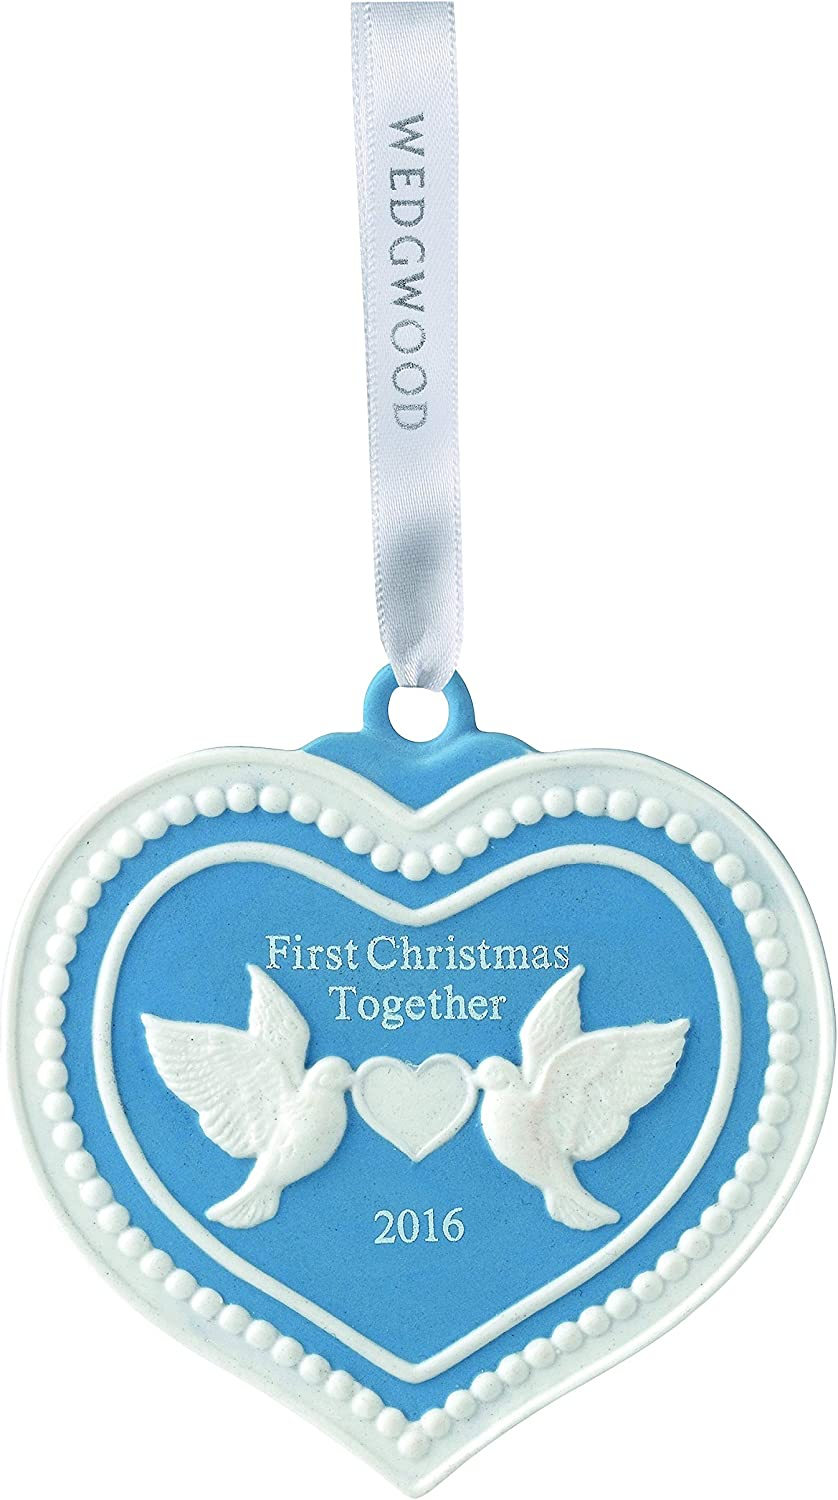 Blue WWRD 40016250 Wedgwood 2016 Our 1st Christmas